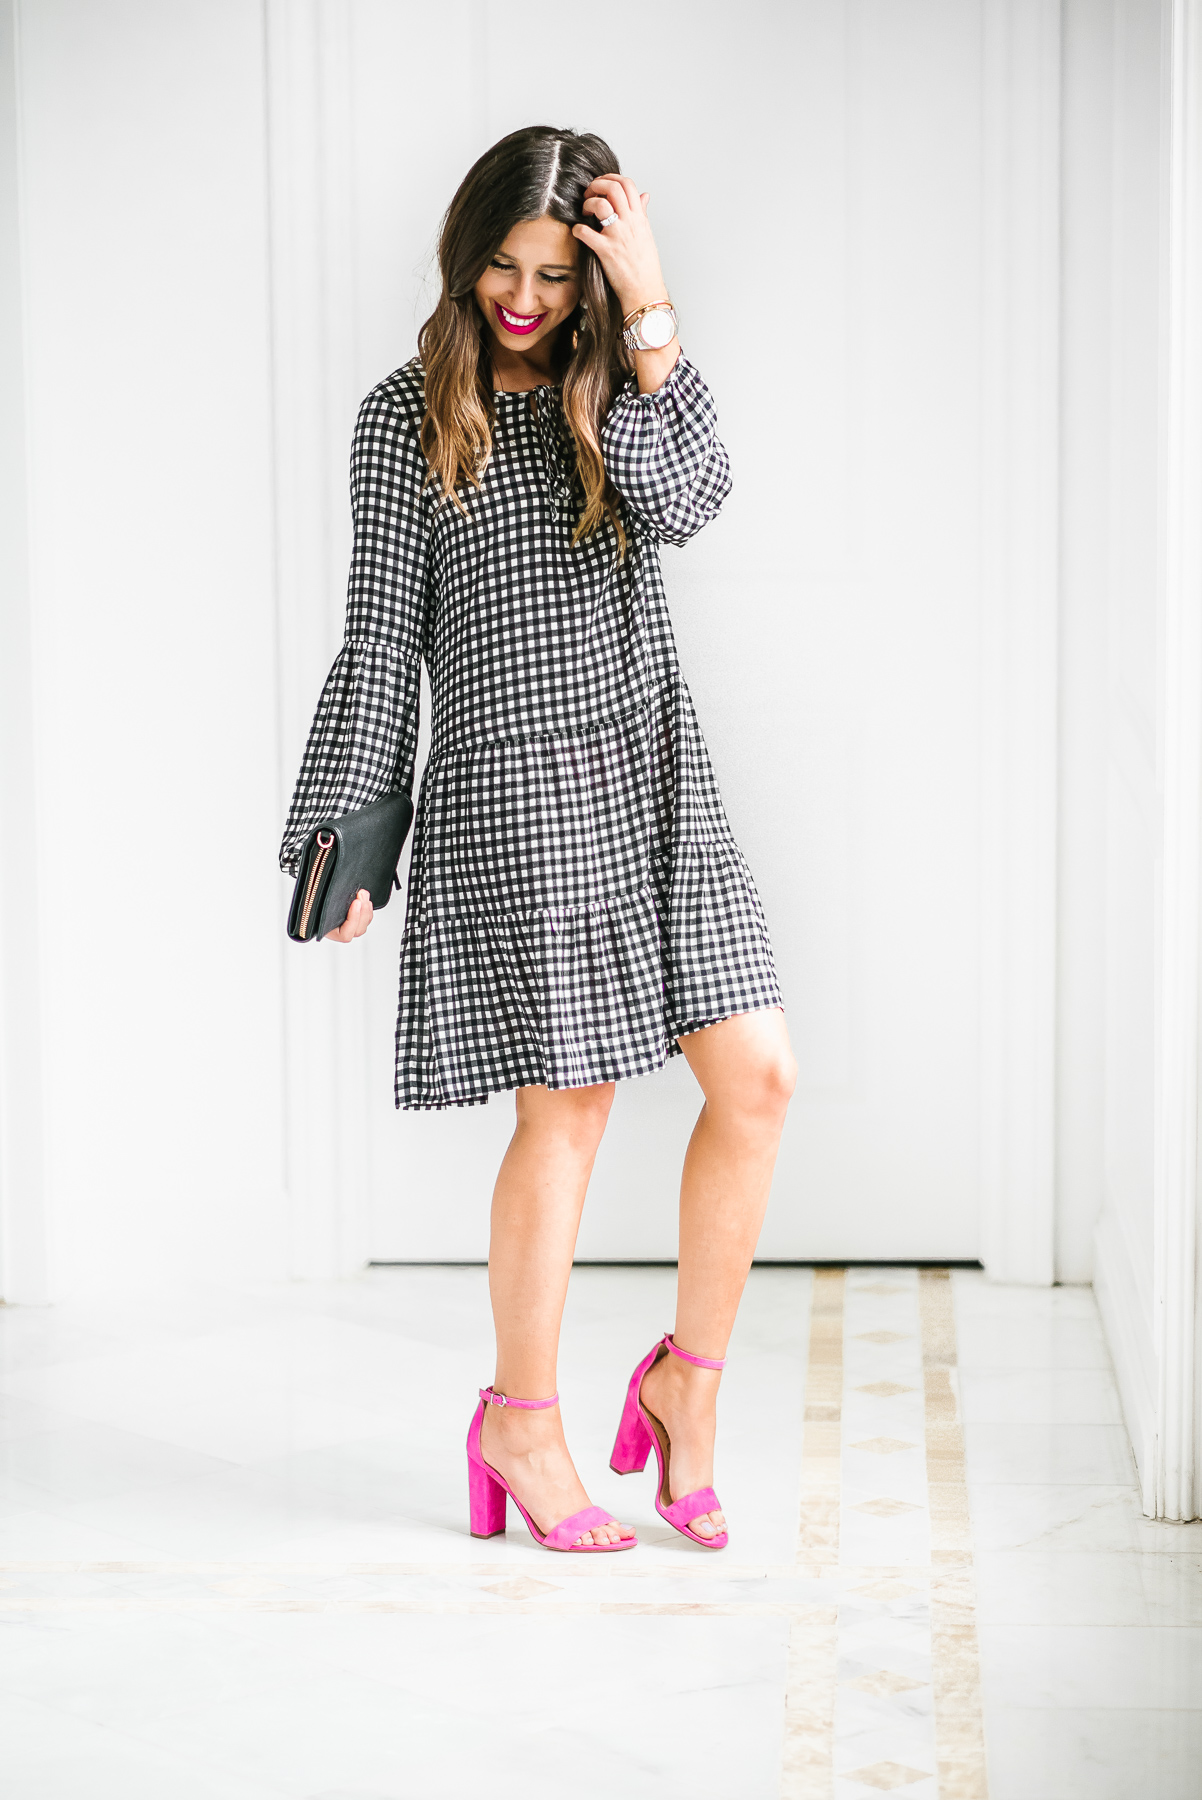 Dress Up Buttercup // A Houston-based fashion travel blog developed to daily inspire your own personal style by Dede Raad | Gingham Dress